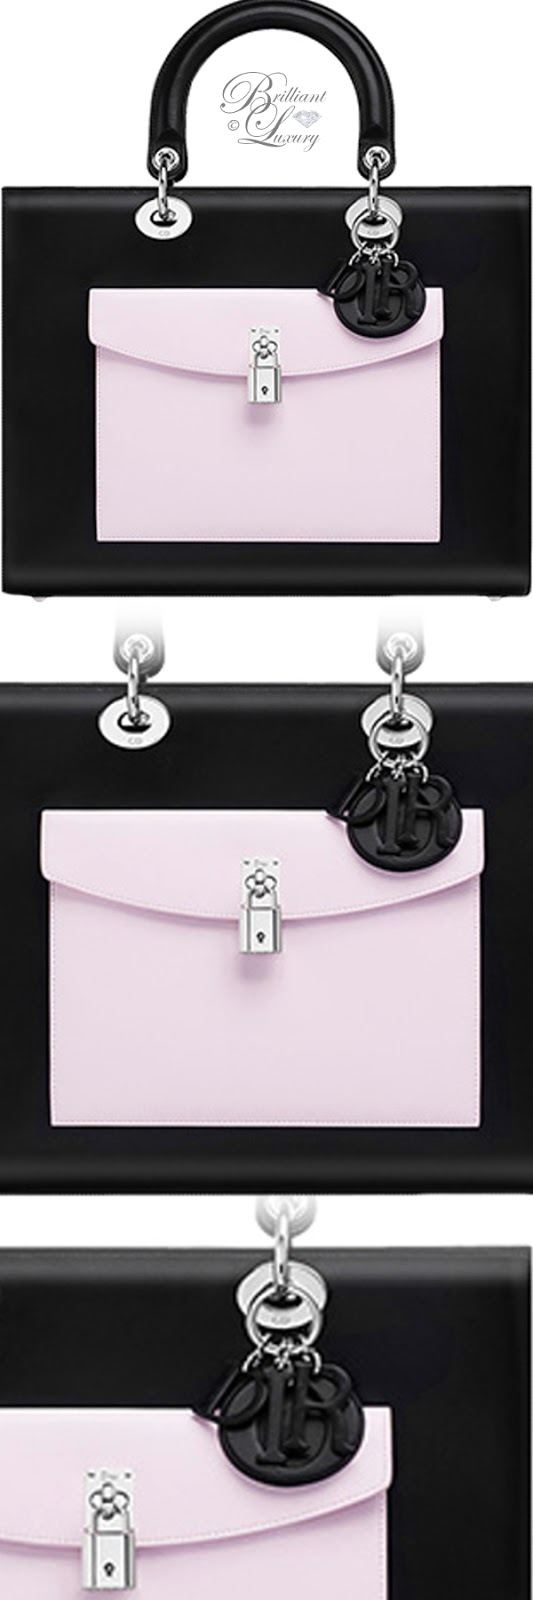 Brilliant Luxury ♦ Lady Dior black lambskin bag with contrasting pockets